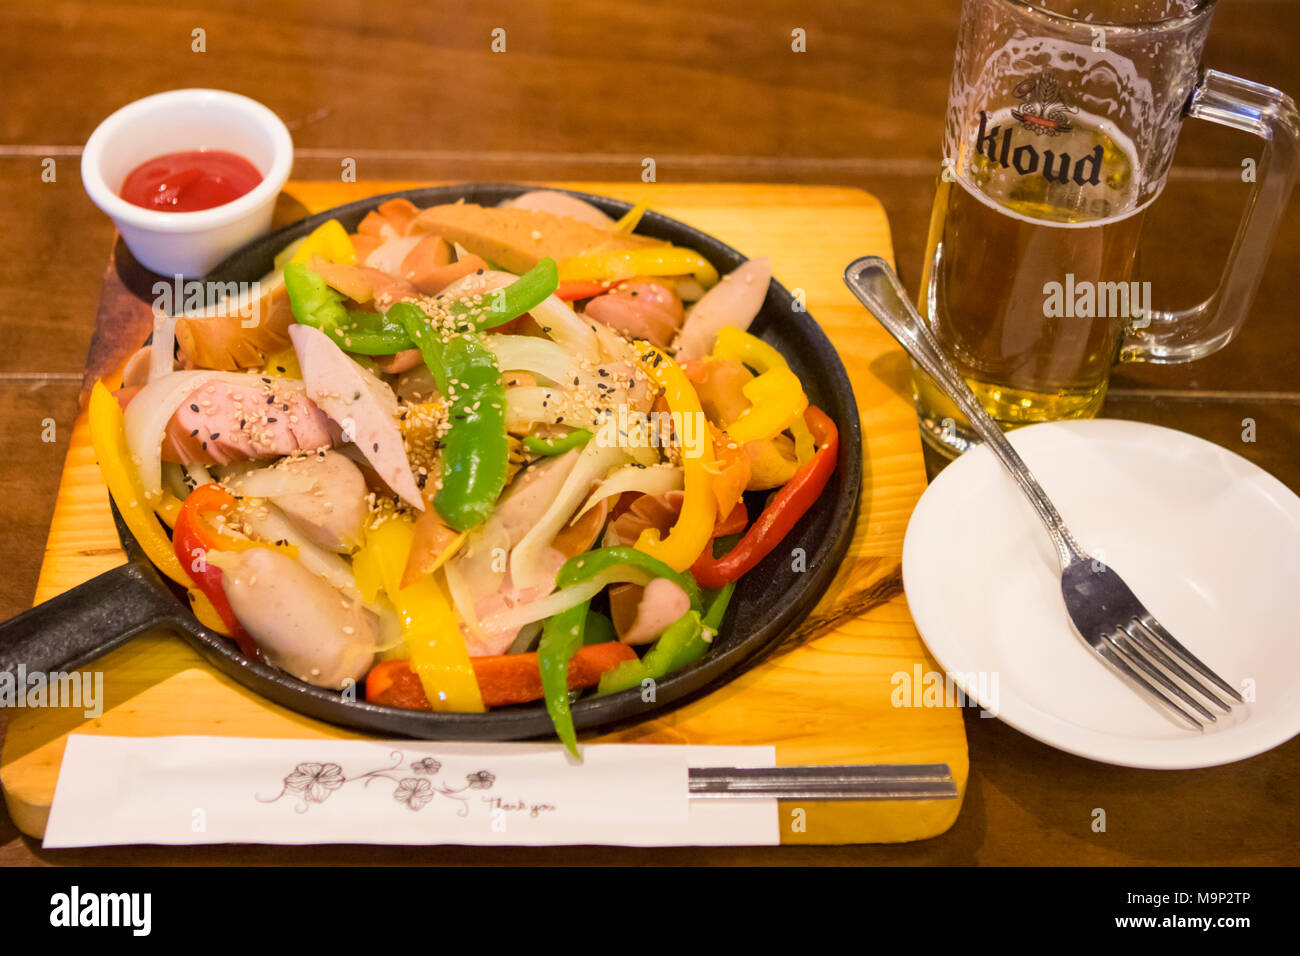 A typical dish of South Korea to eat with beer after skiing: grilled sausage and sweet peppers.  The Alpensia Resort is a ski resort and a tourist attraction. It is located on the territory of the township of Daegwallyeong-myeon, in the county of Pyeongchang, hosting the Winter Olympics in February 2018.  The ski resort is approximately 2.5 hours from Seoul or Incheon Airport by car, predominantly all motorway.   Alpensia has six slopes for skiing and snowboarding, with runs up to 1.4 km (0.87 mi) long, for beginners and advanced skiers, and an area reserved for snowboarders. While the resort - Stock Image